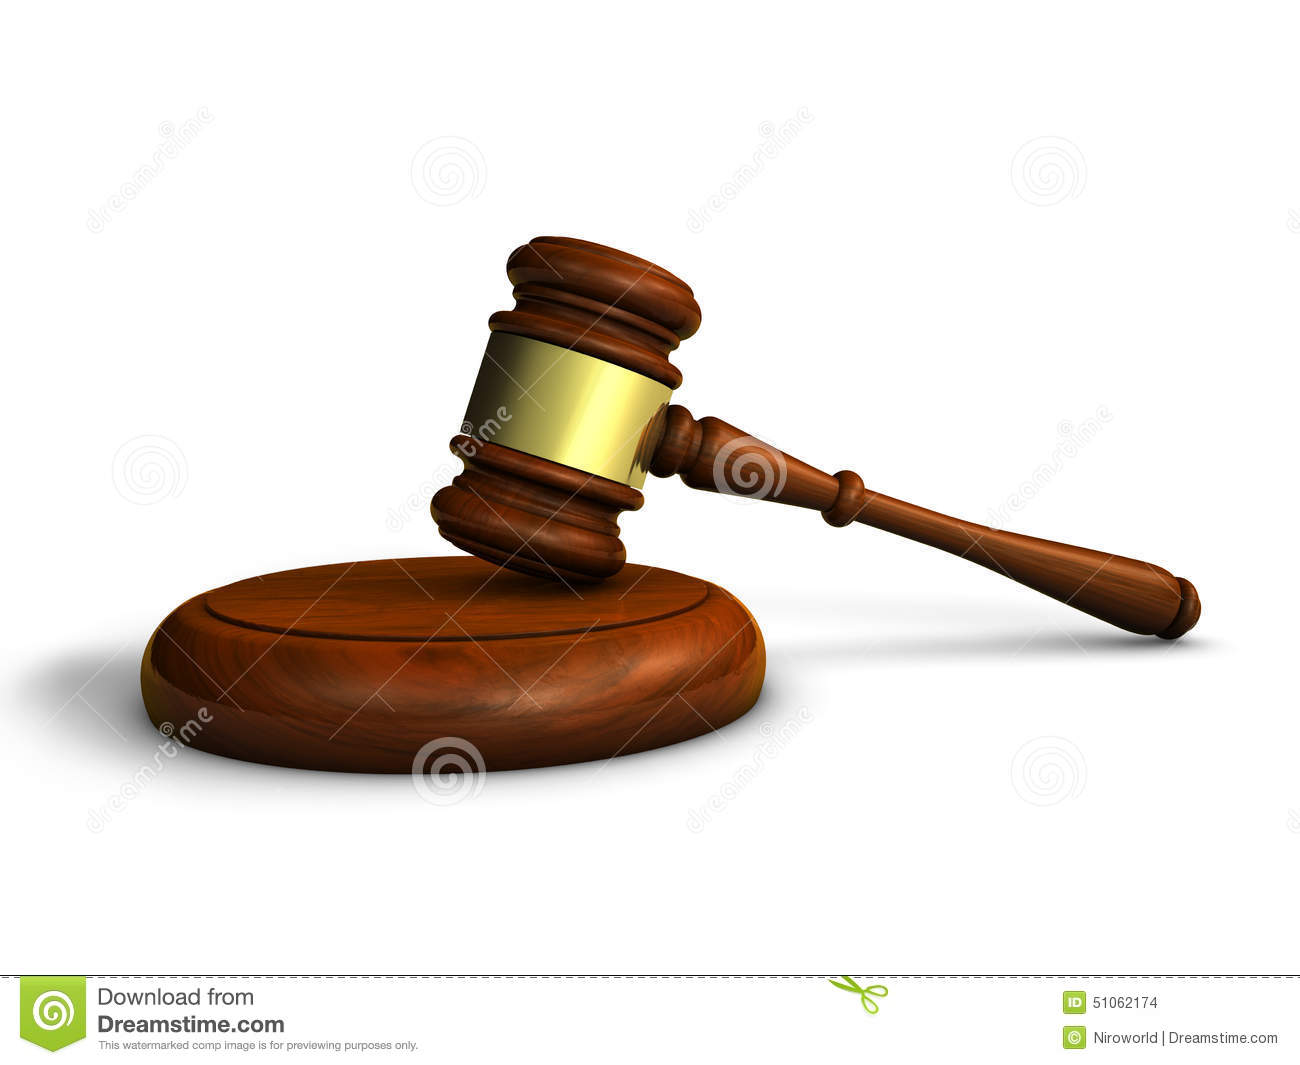 gavel-law-justice-symbol-judge-concept-d-rendering-white-background-51062174.jpg